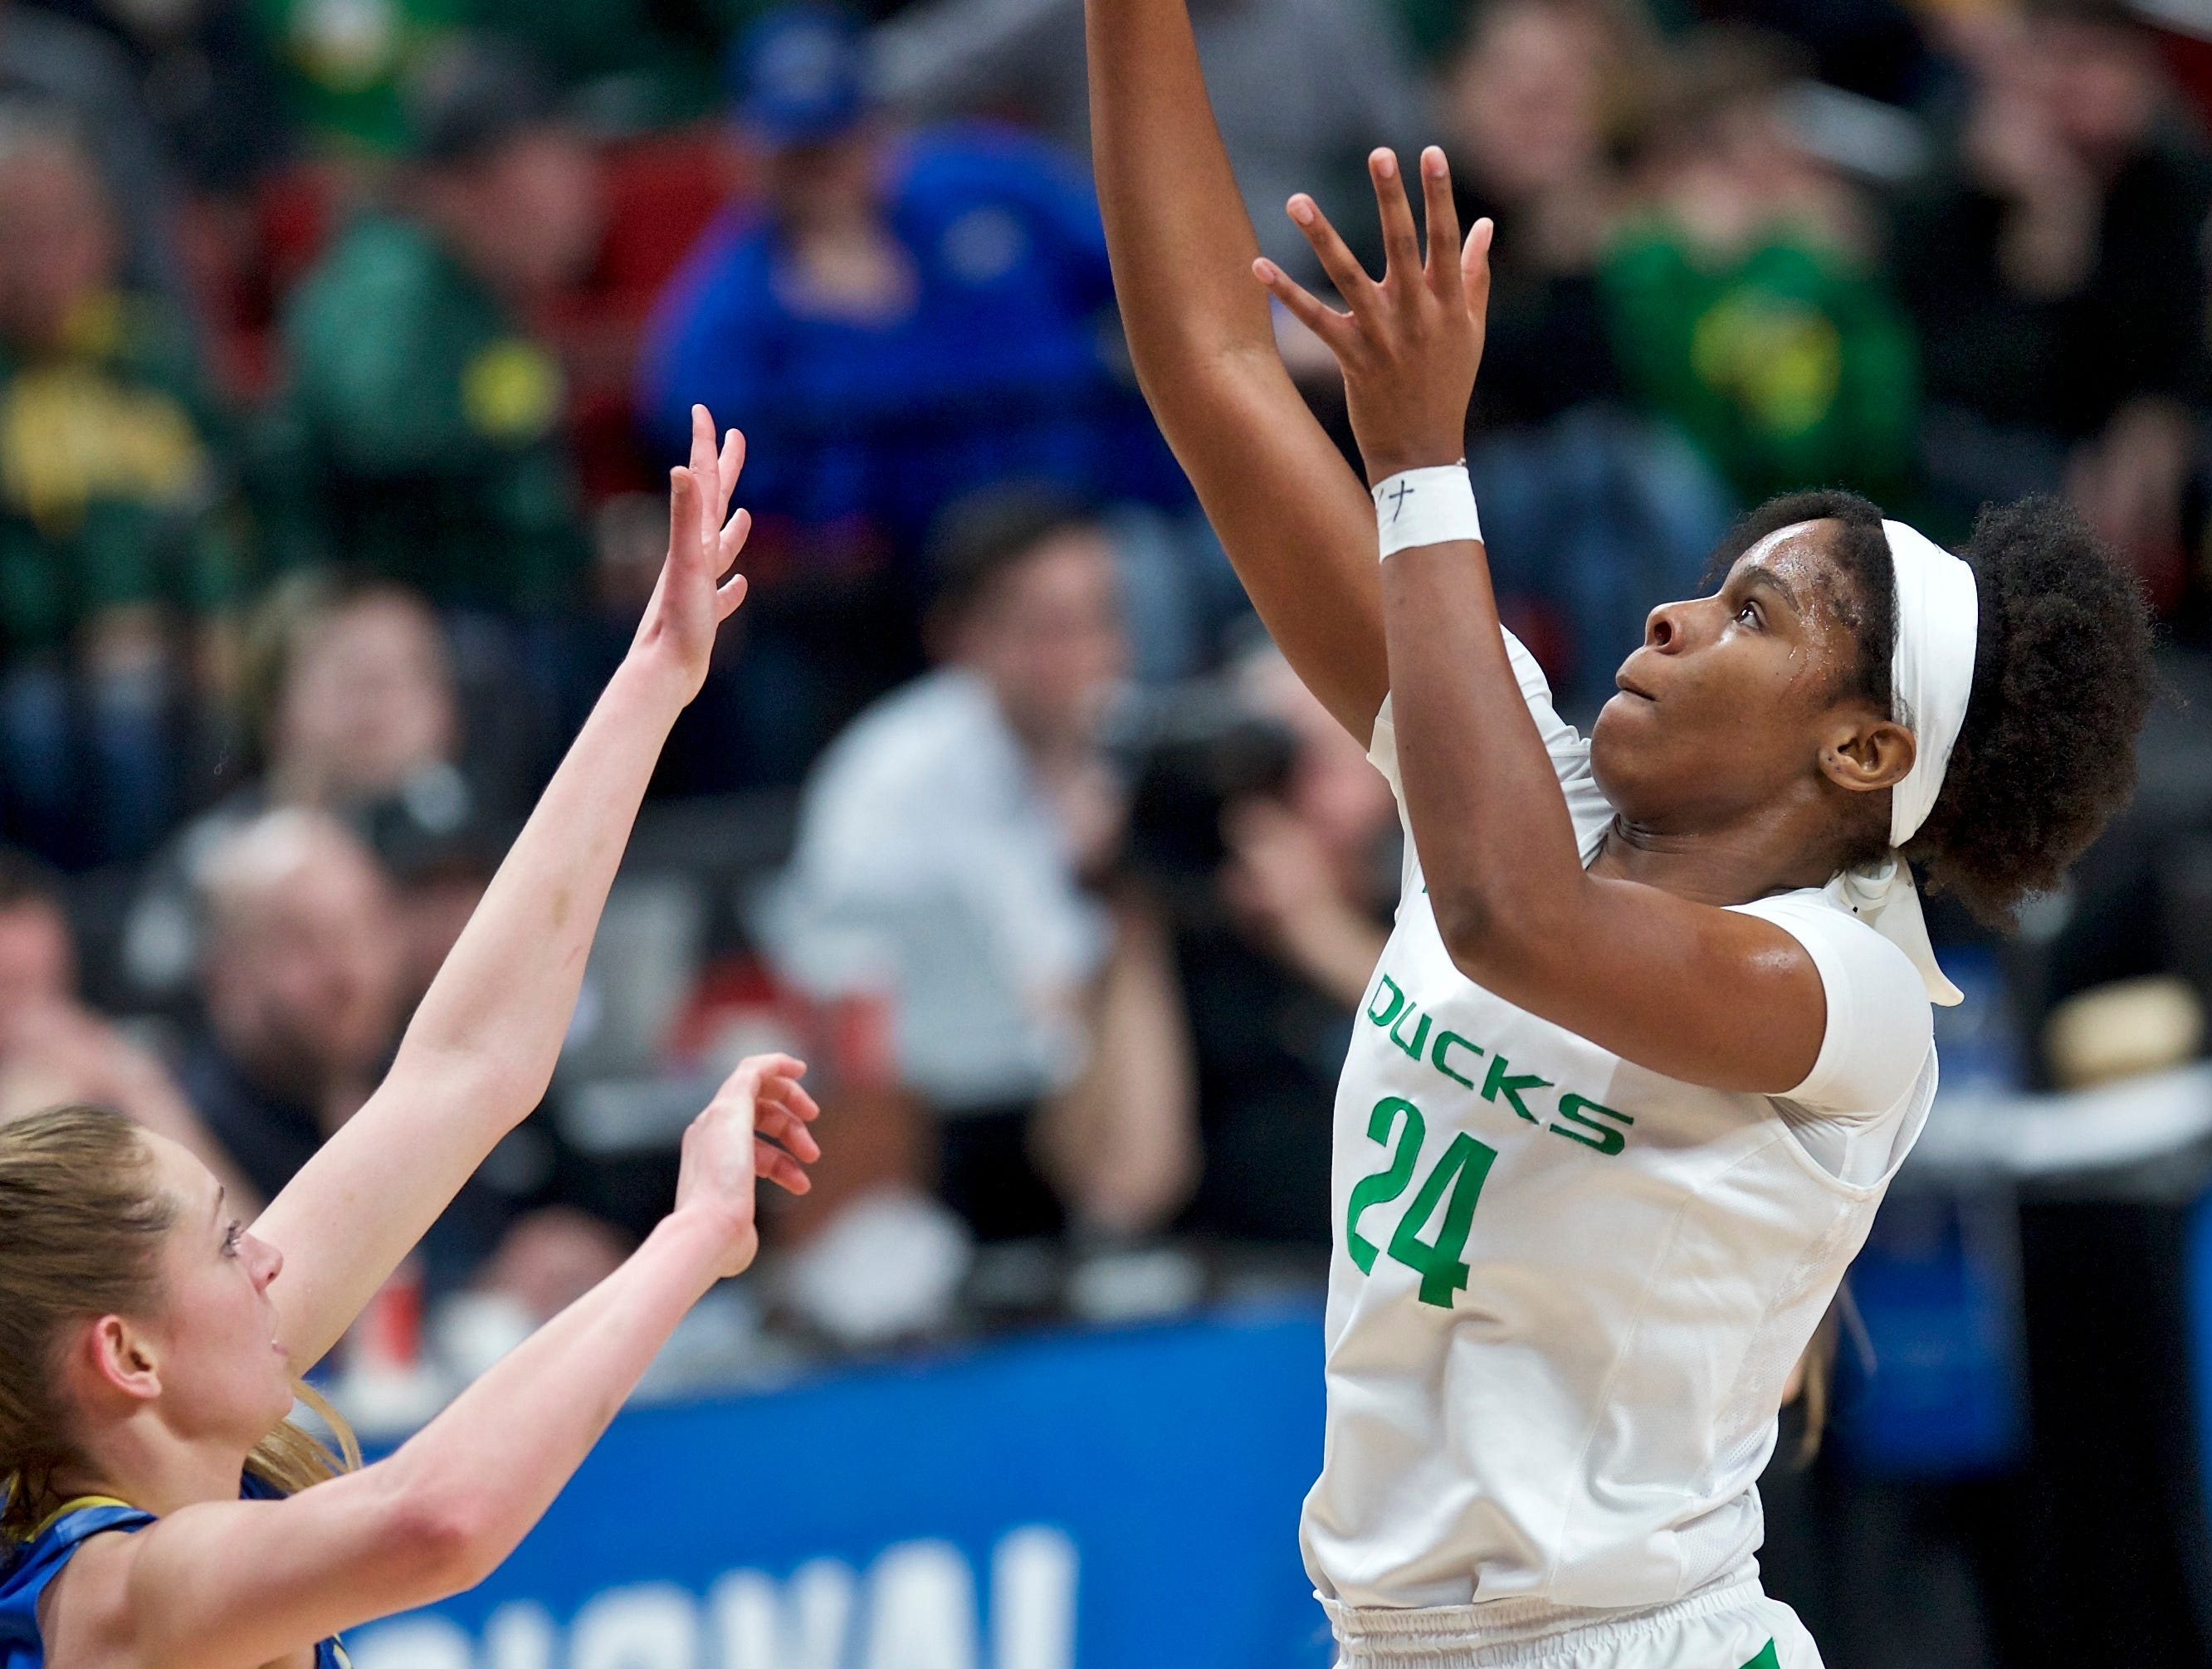 Oregon forward Ruthy Hebard, right, shoots over South Dakota State forward Tagyn Larson during the first half of a regional semifinal in the NCAA women's college basketball tournament Friday, March 29, 2019, in Portland, Ore. (AP Photo/Craig Mitchelldyer)